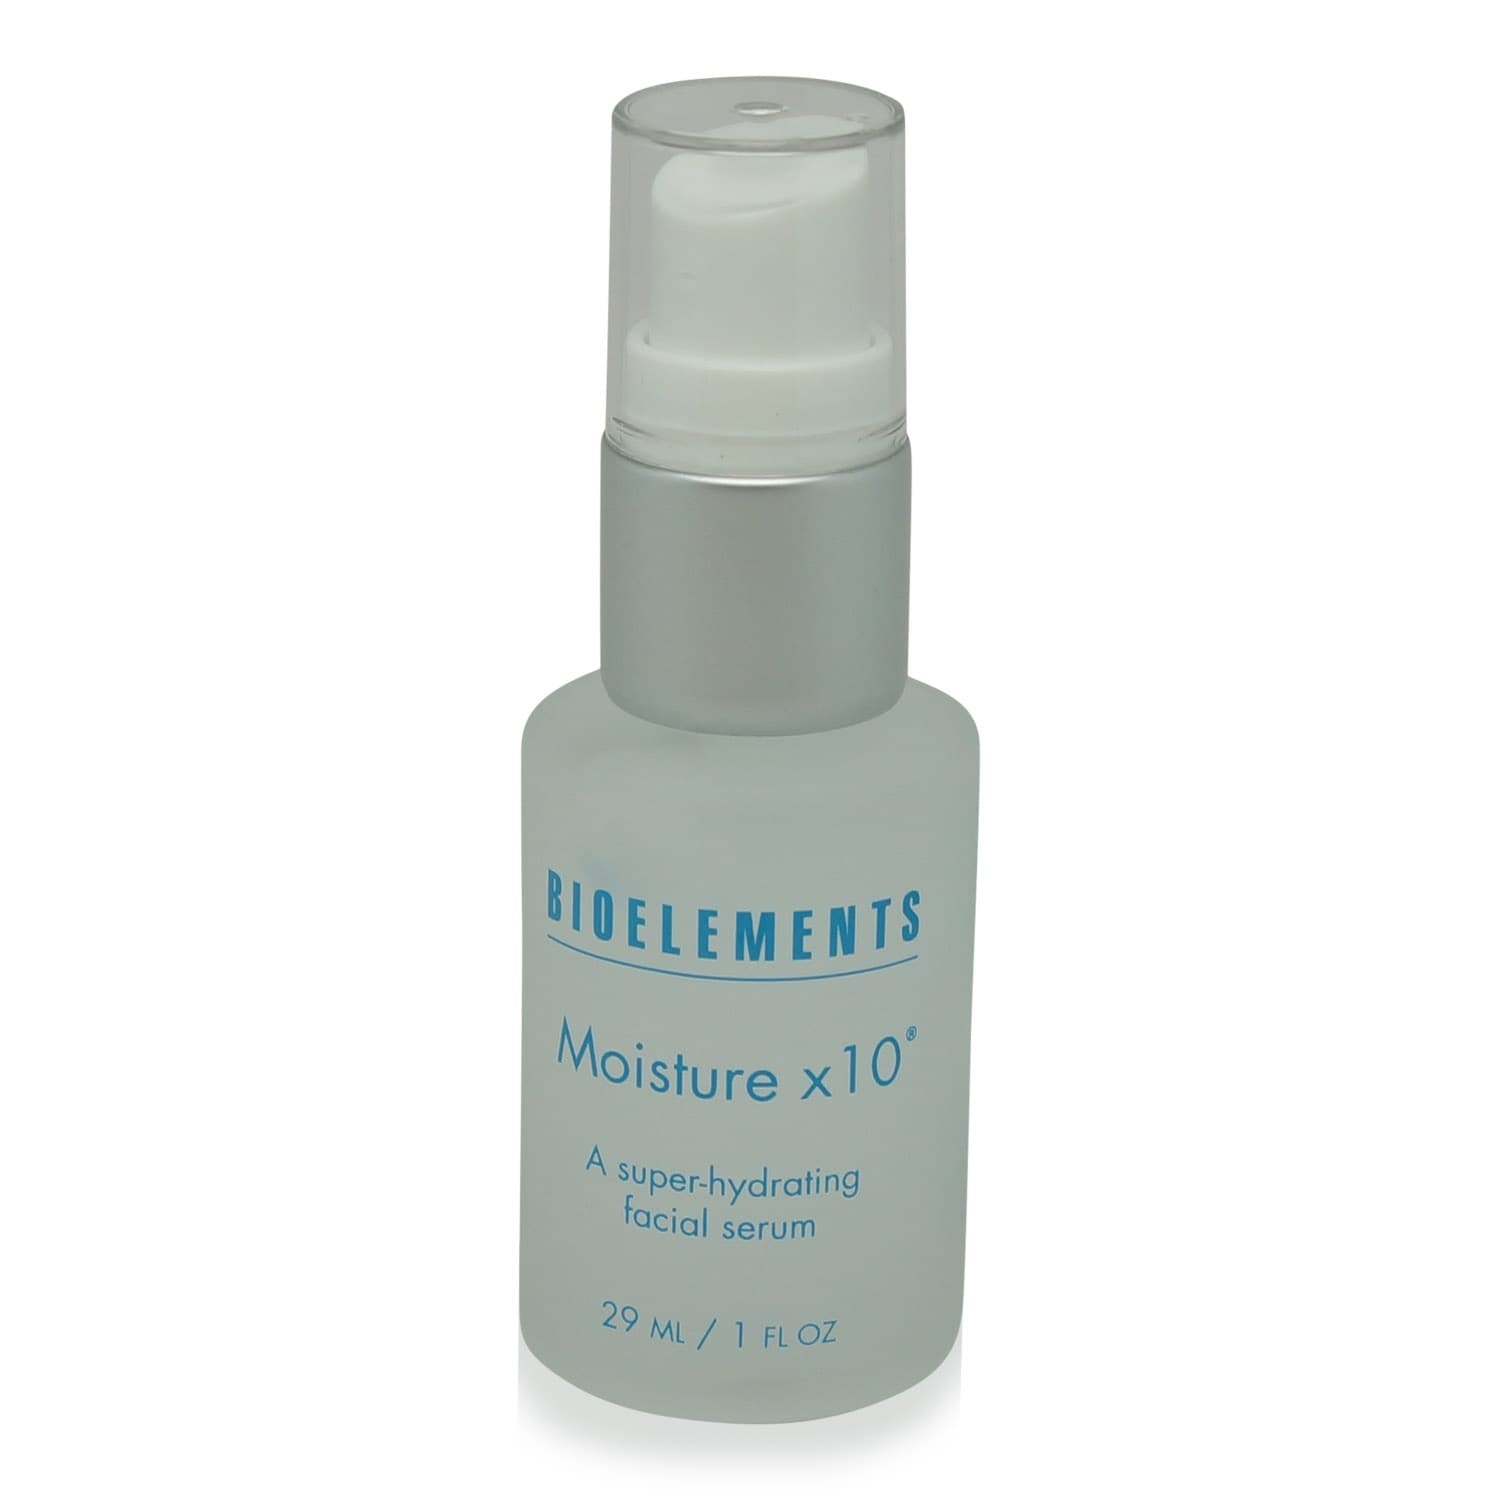 bioelements moisture x10 hydratin, 1 ounce Essy Beauty Natural Eye Gel for Wrinkles, Fine Lines, Dark Circles, Puffiness Bag (Blue)